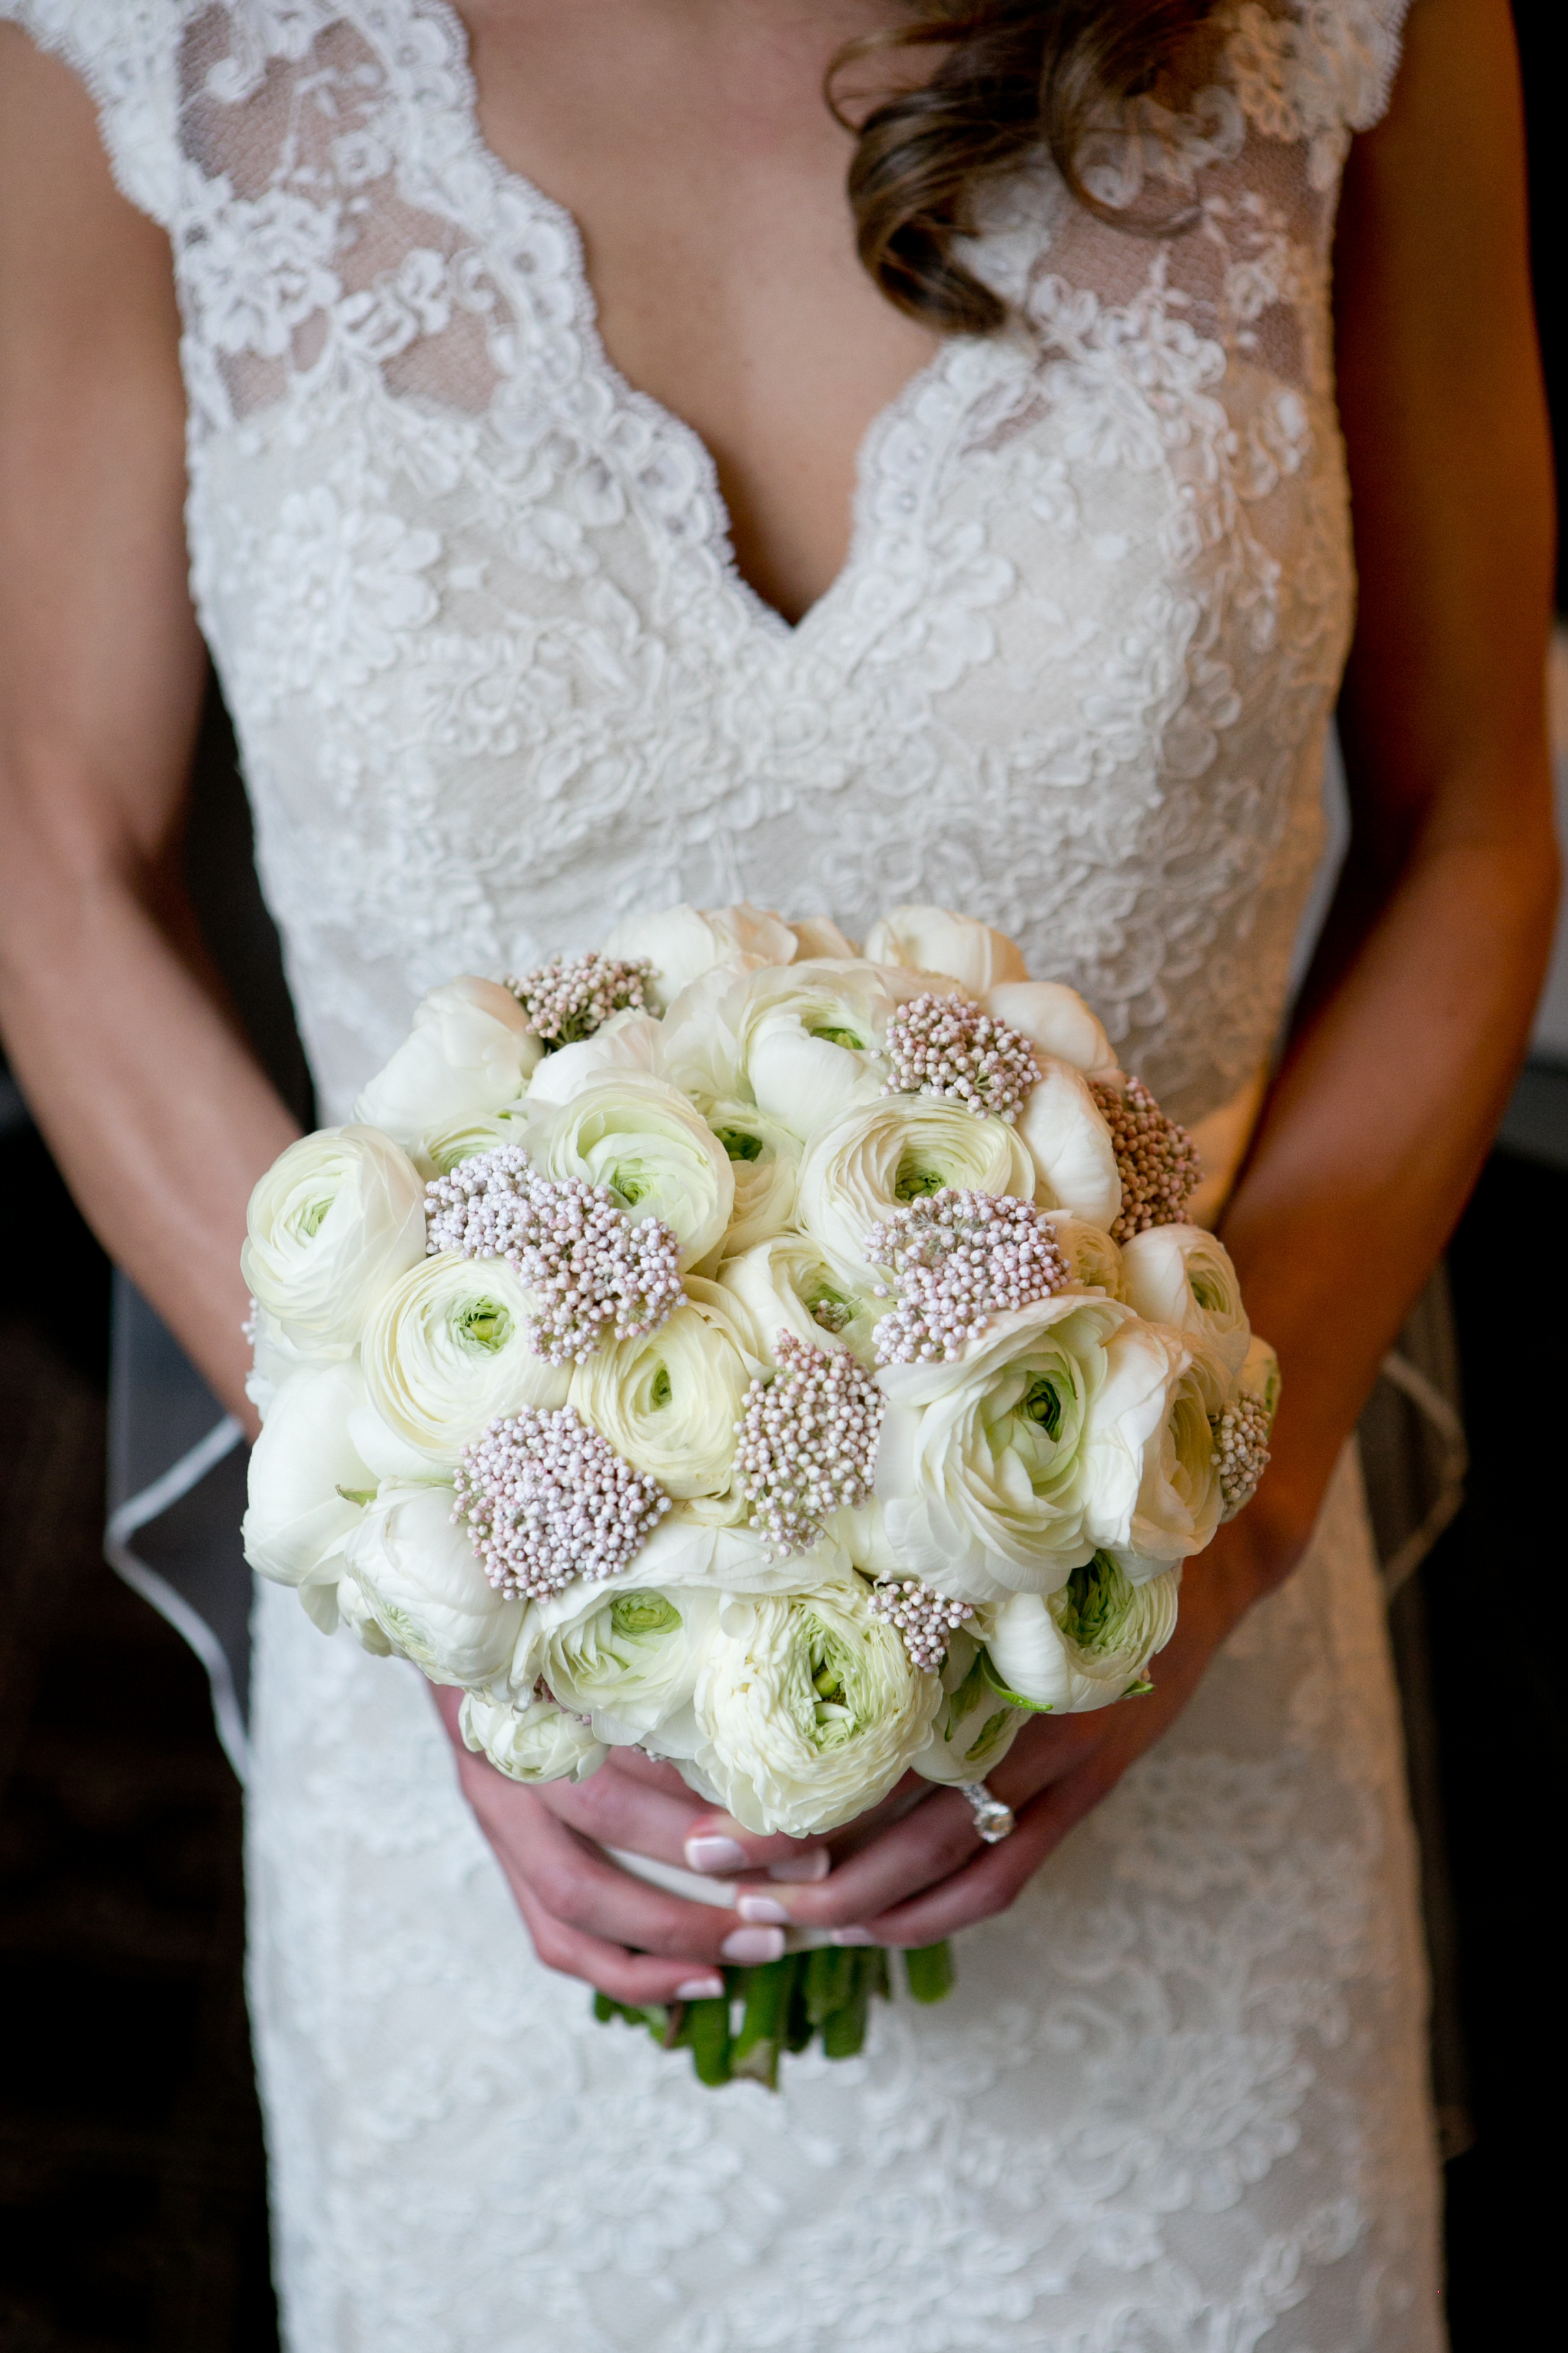 Flowers & Decor, Real Weddings, Wedding Style, ivory, Bride Bouquets, Spring Weddings, City Real Weddings, Classic Real Weddings, Midwest Real Weddings, Spring Real Weddings, City Weddings, Classic Wedding Flowers & Decor, Spring Wedding Flowers & Decor, Ranunculus, Monochromatic